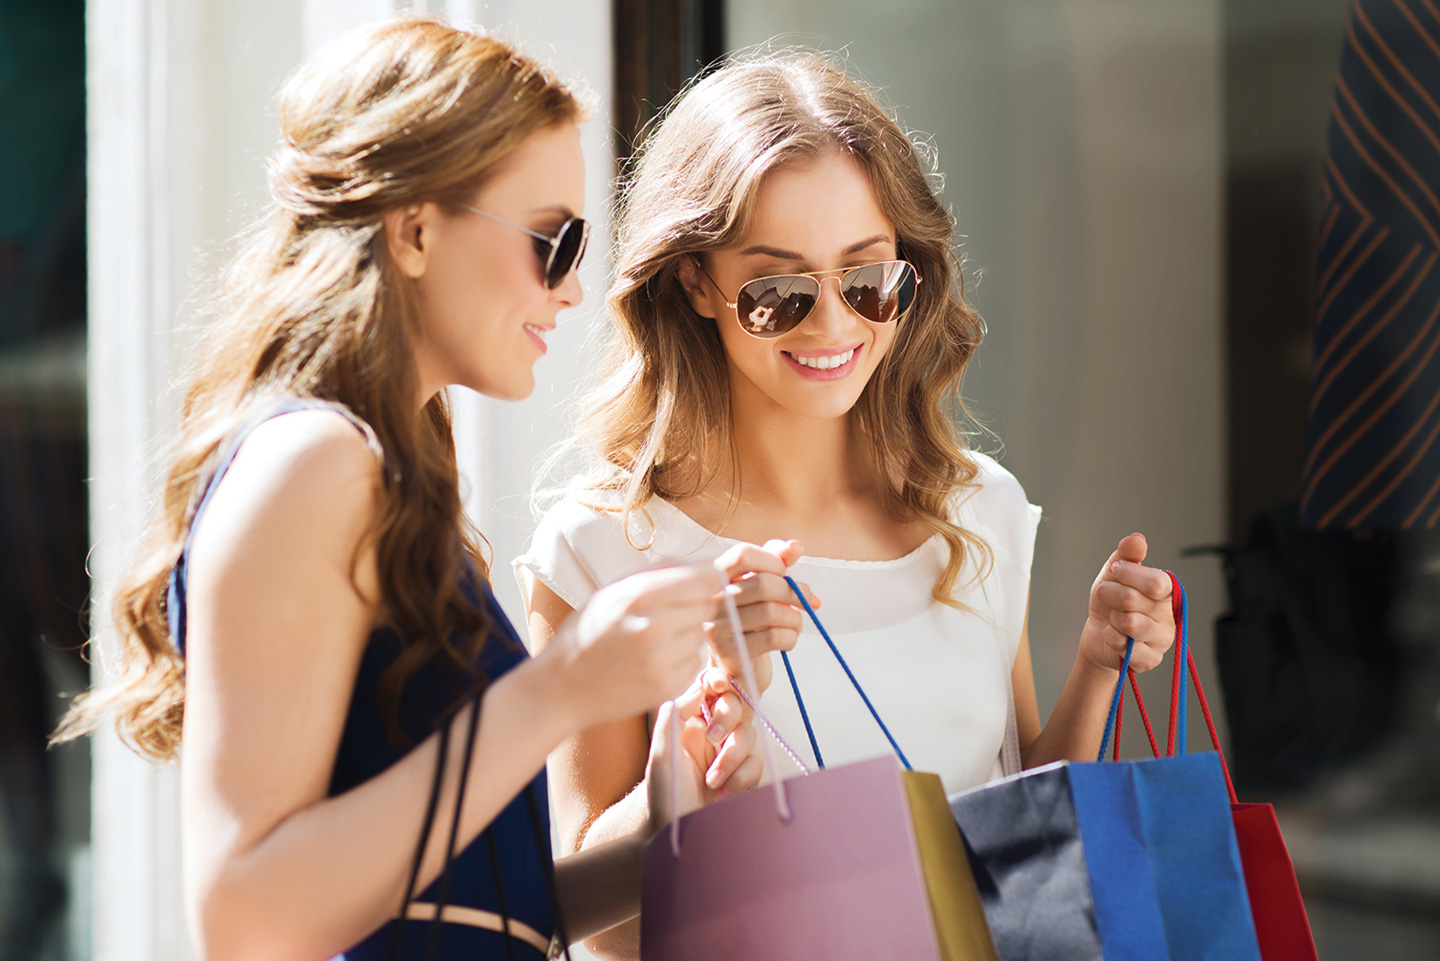 shopping-shutterstock_387668197